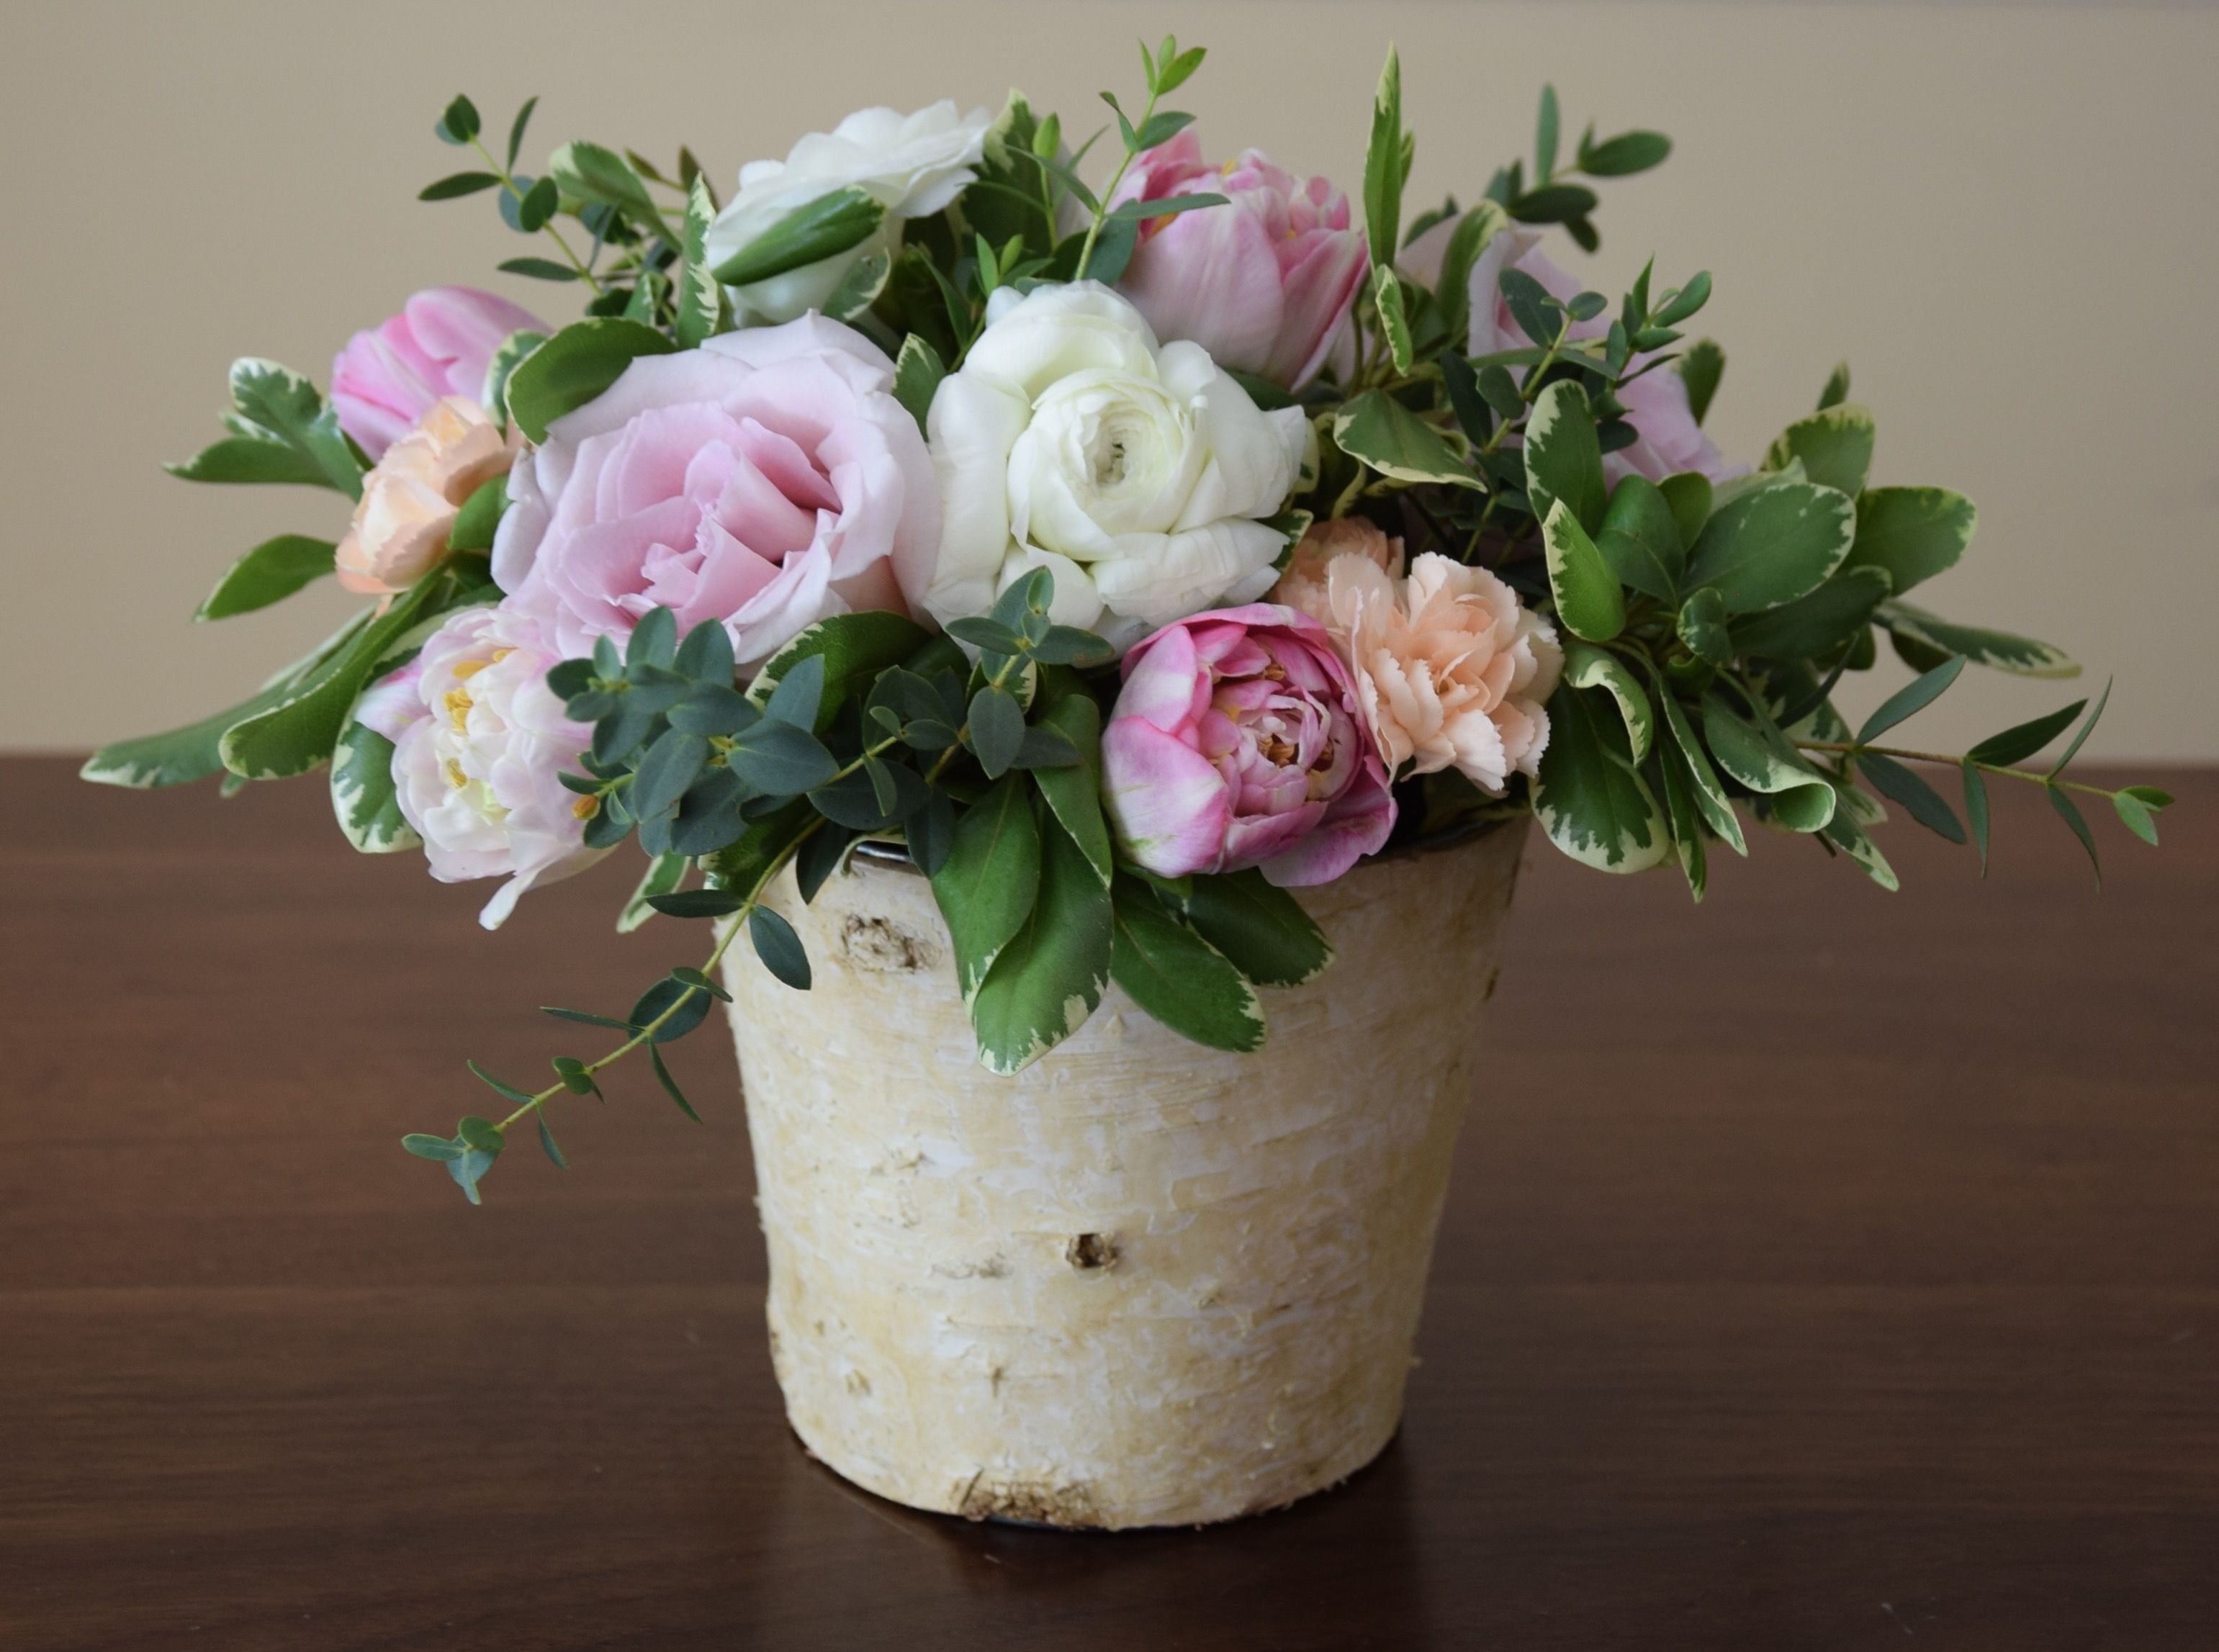 Teachers floral gift in a rustic container ranunculus roses teachers floral gift in a rustic container ranunculus roses parrot tulips mini carnations green fillers izmirmasajfo